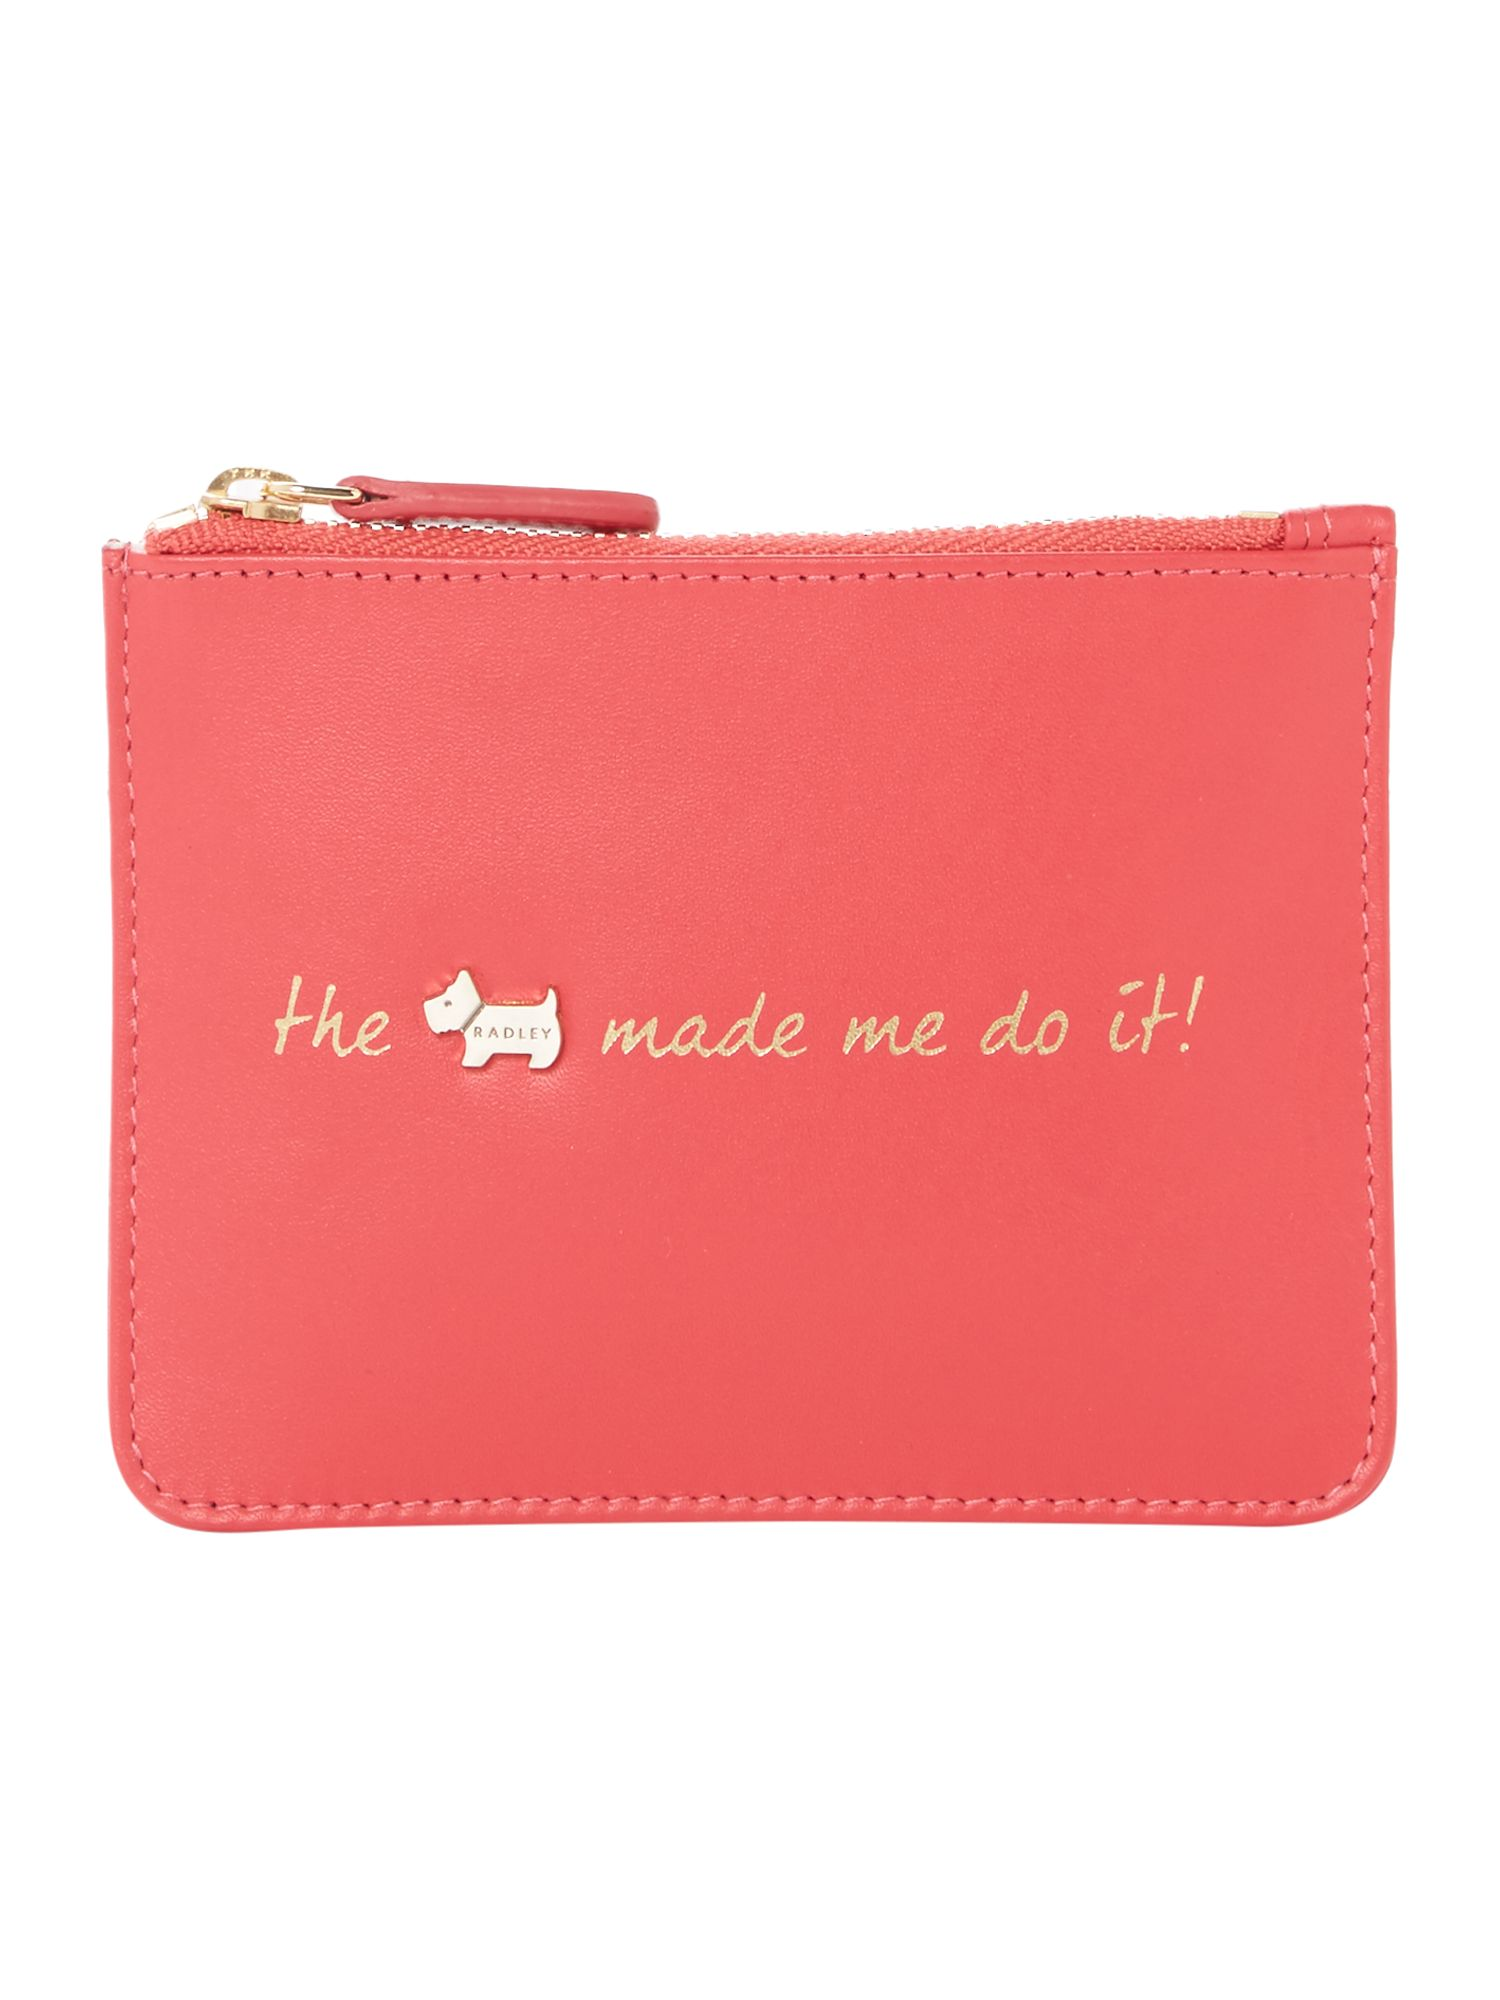 Radley Excuses excuses small zip pouch purse Pink